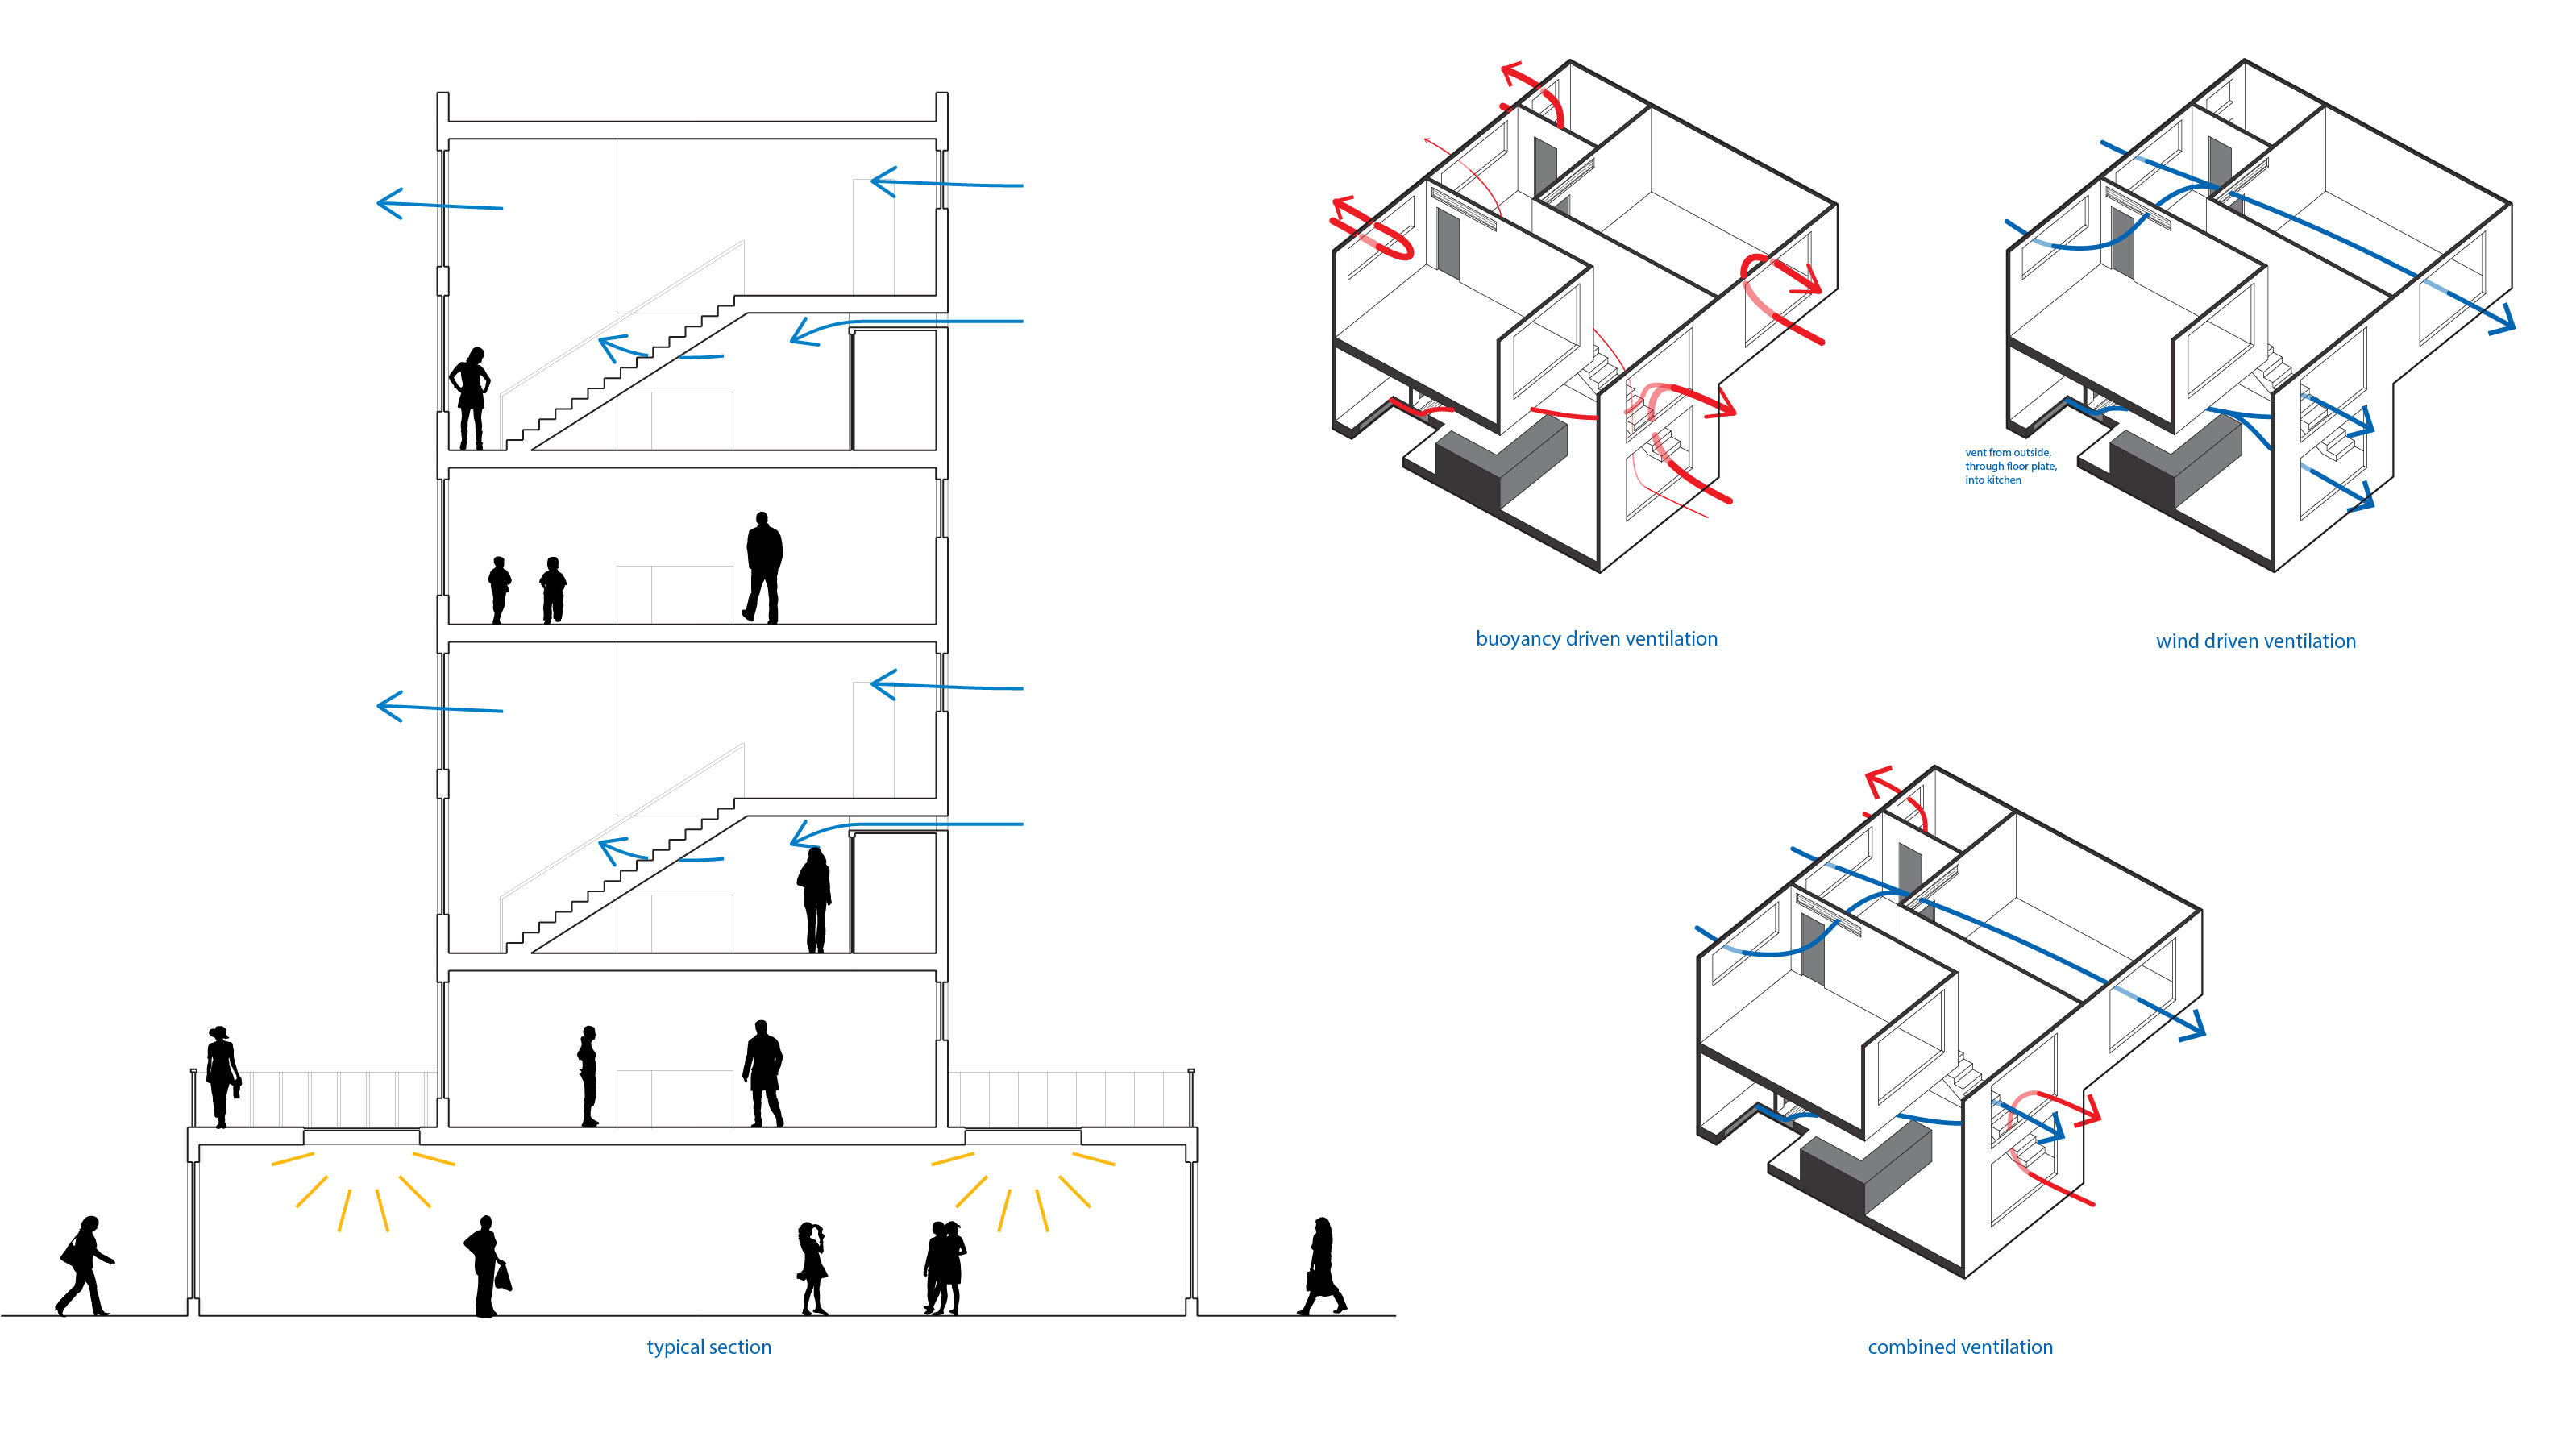 The buildings were designed to take advantage of existing wind patterns for natural ventilation. An analysis in Design Builder helped to check the design.